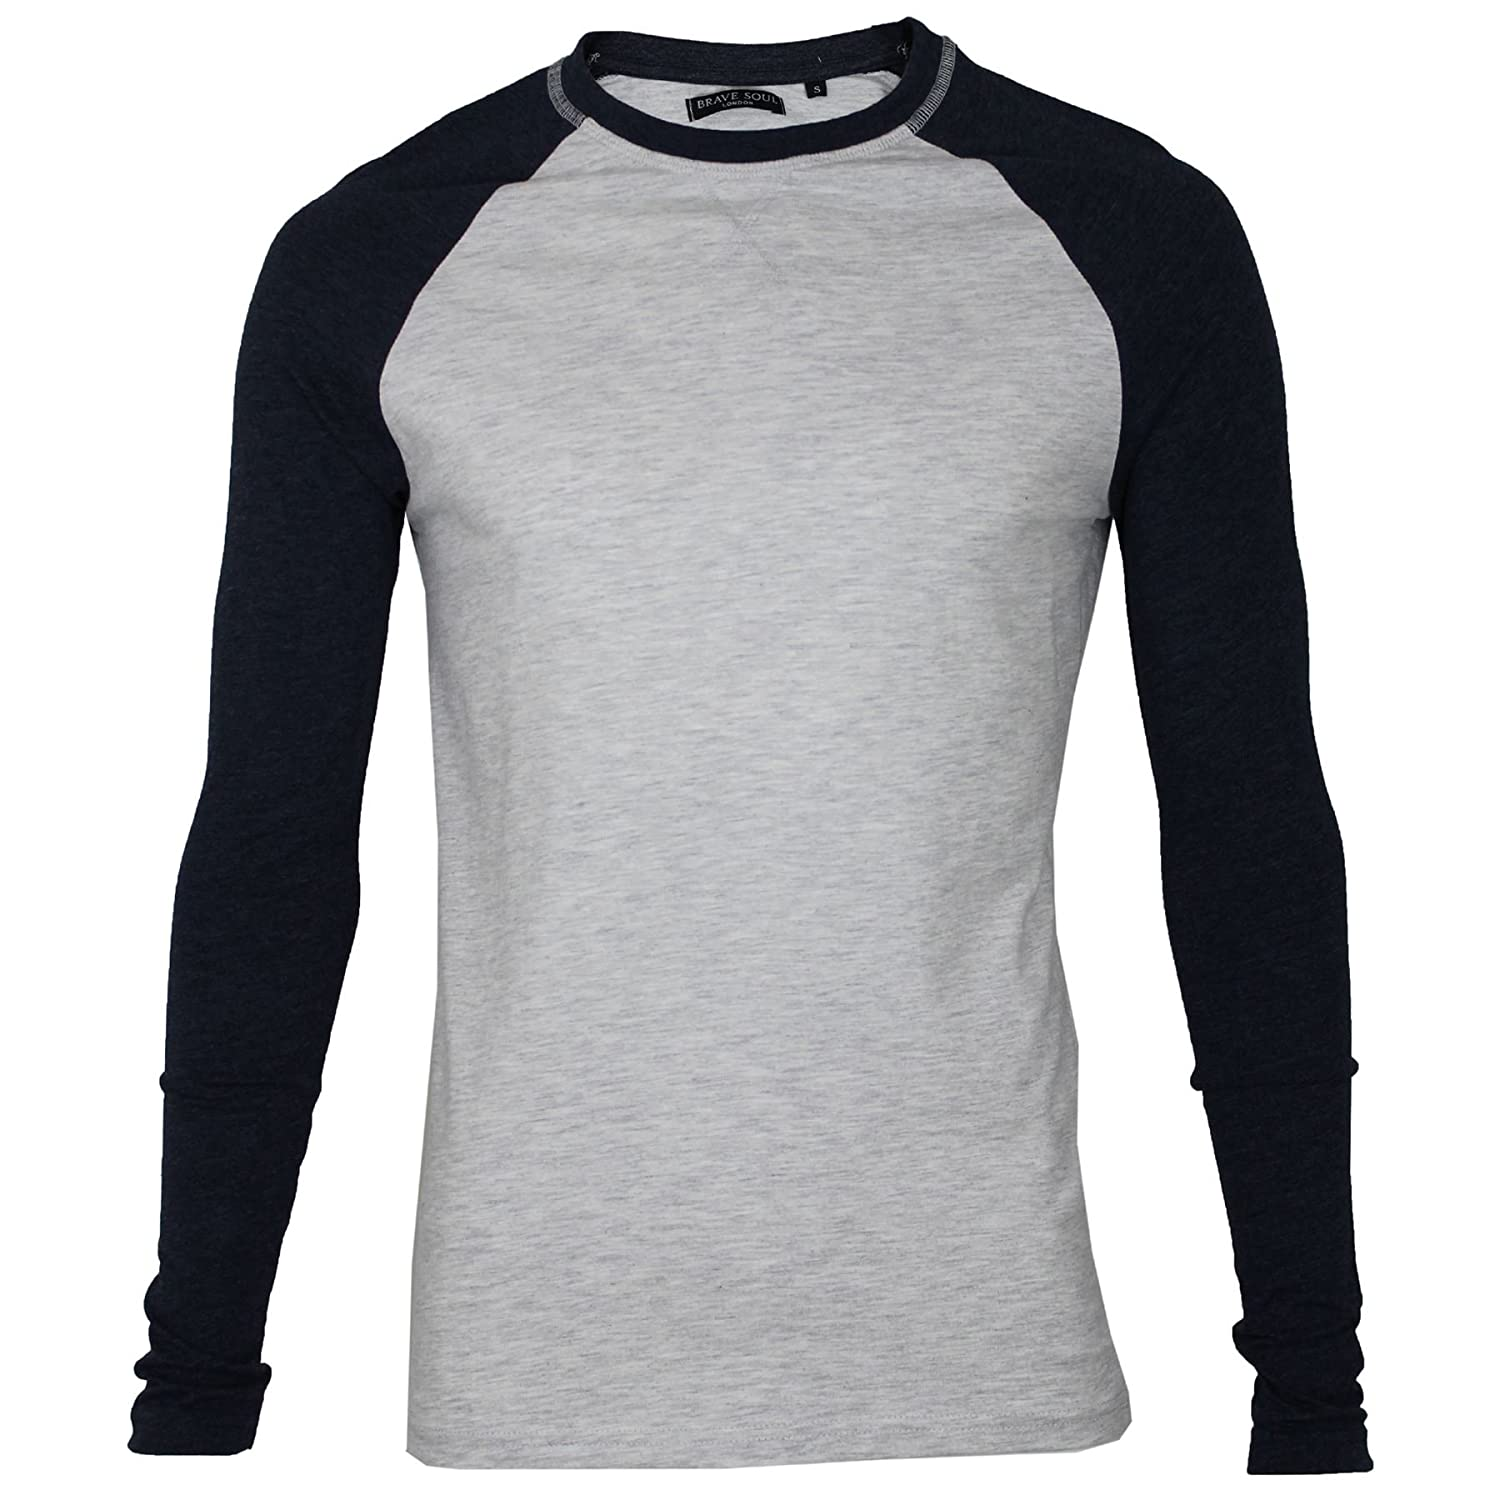 mens long sleeved striped jersey top t shirt by Brave Soul